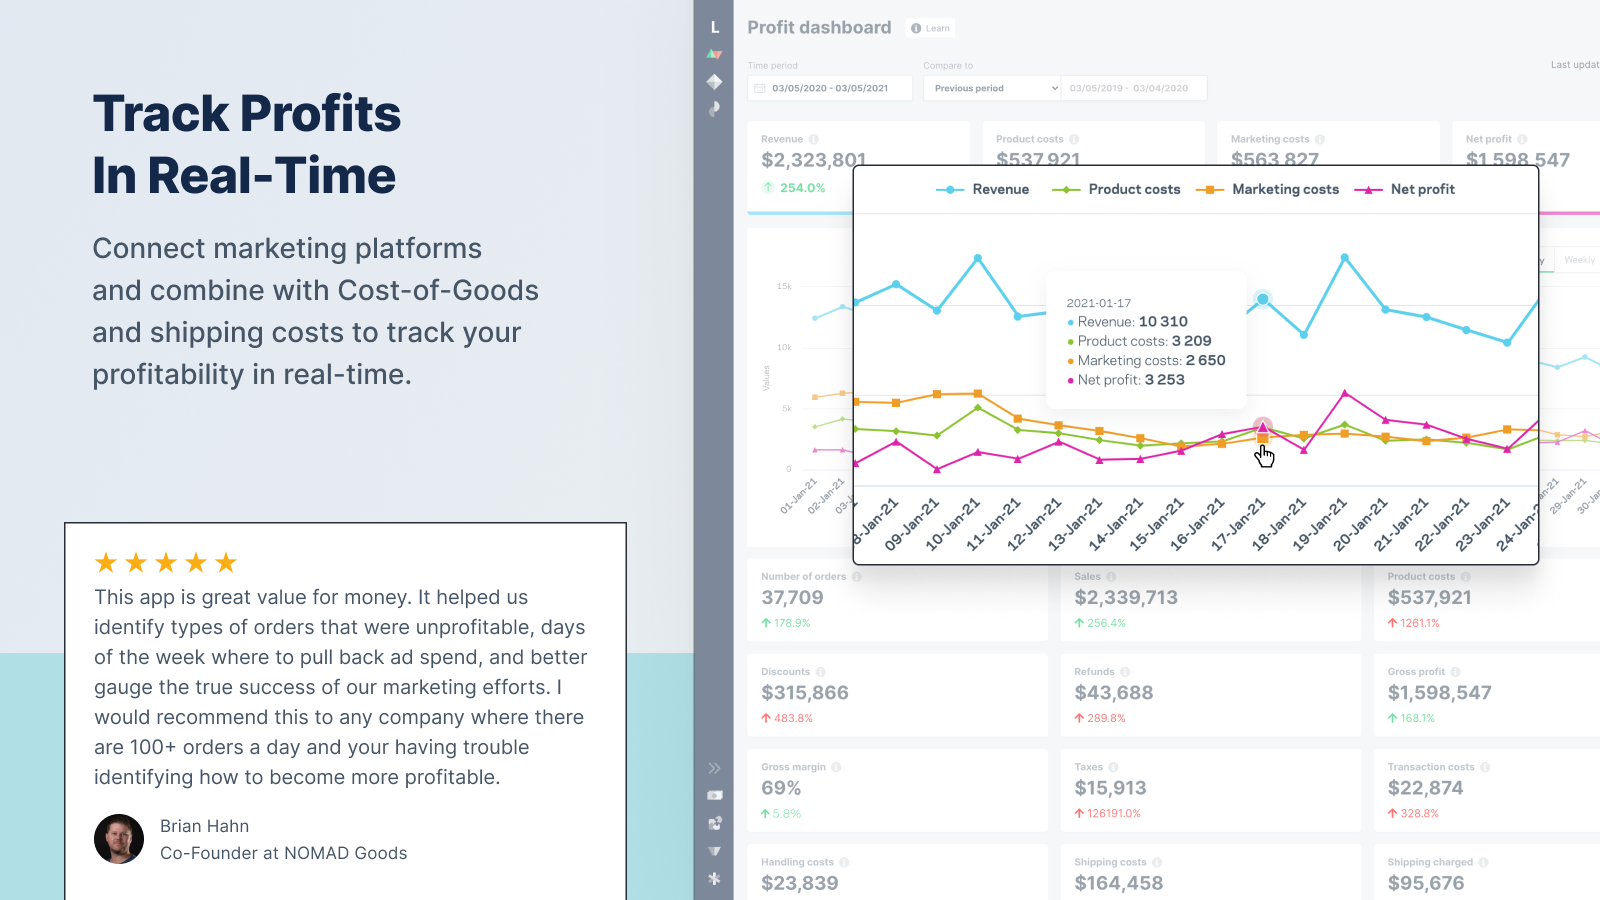 Track profits in real-time